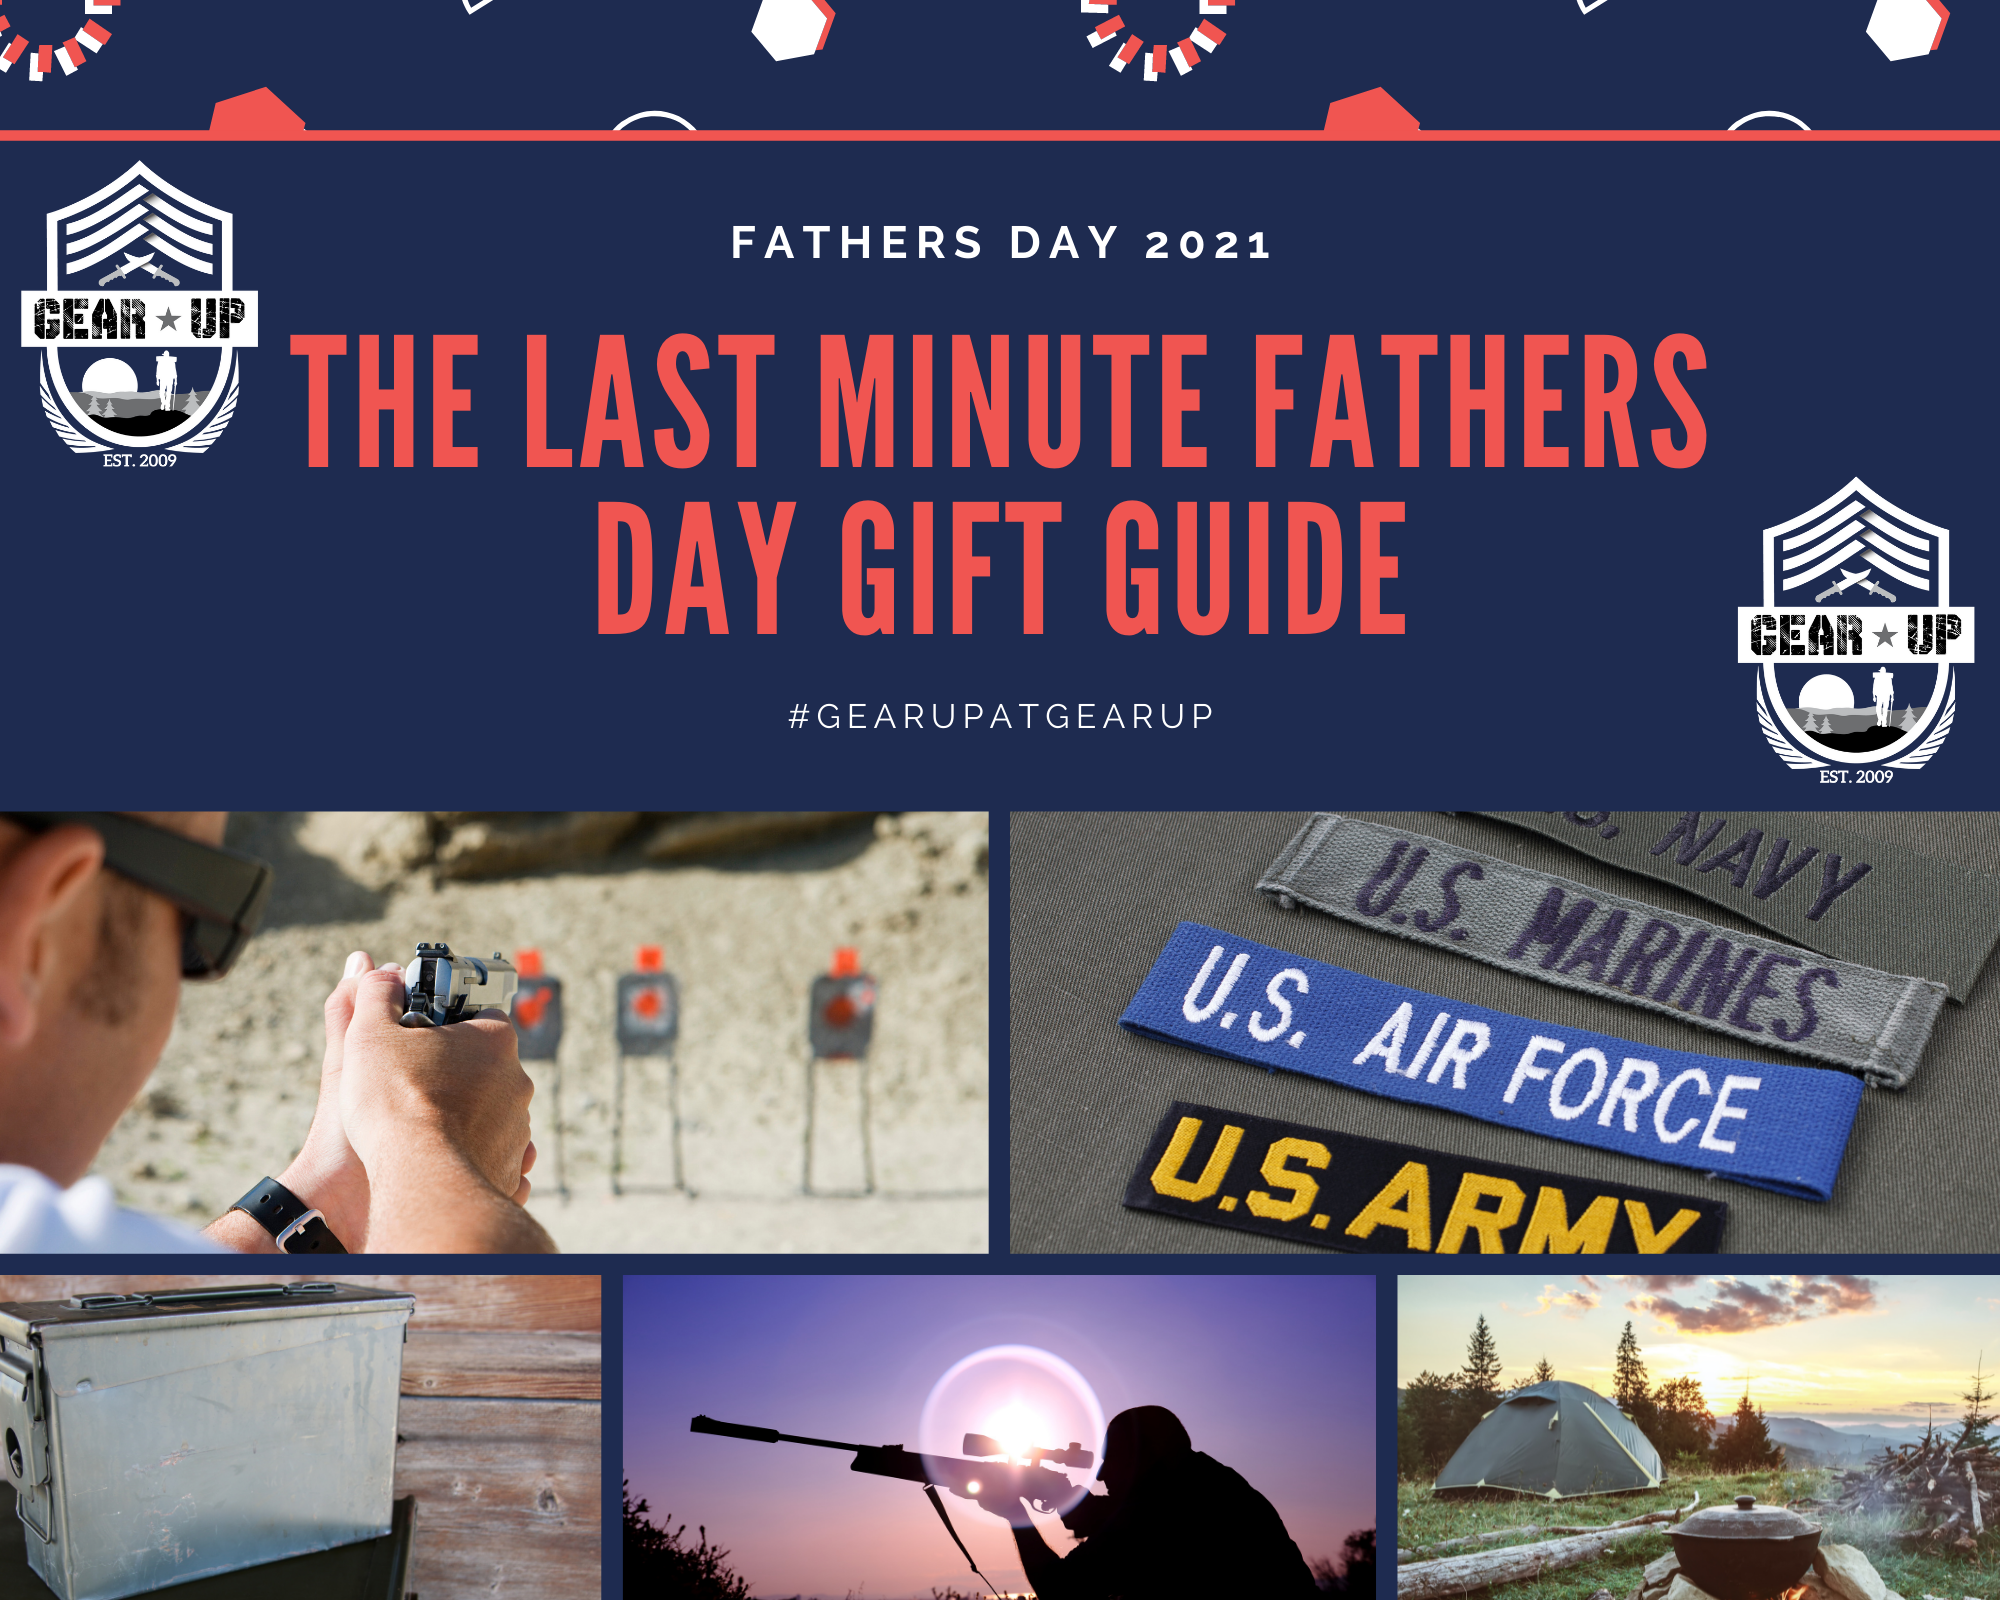 The Last Minute Fathers Day Gift Guide